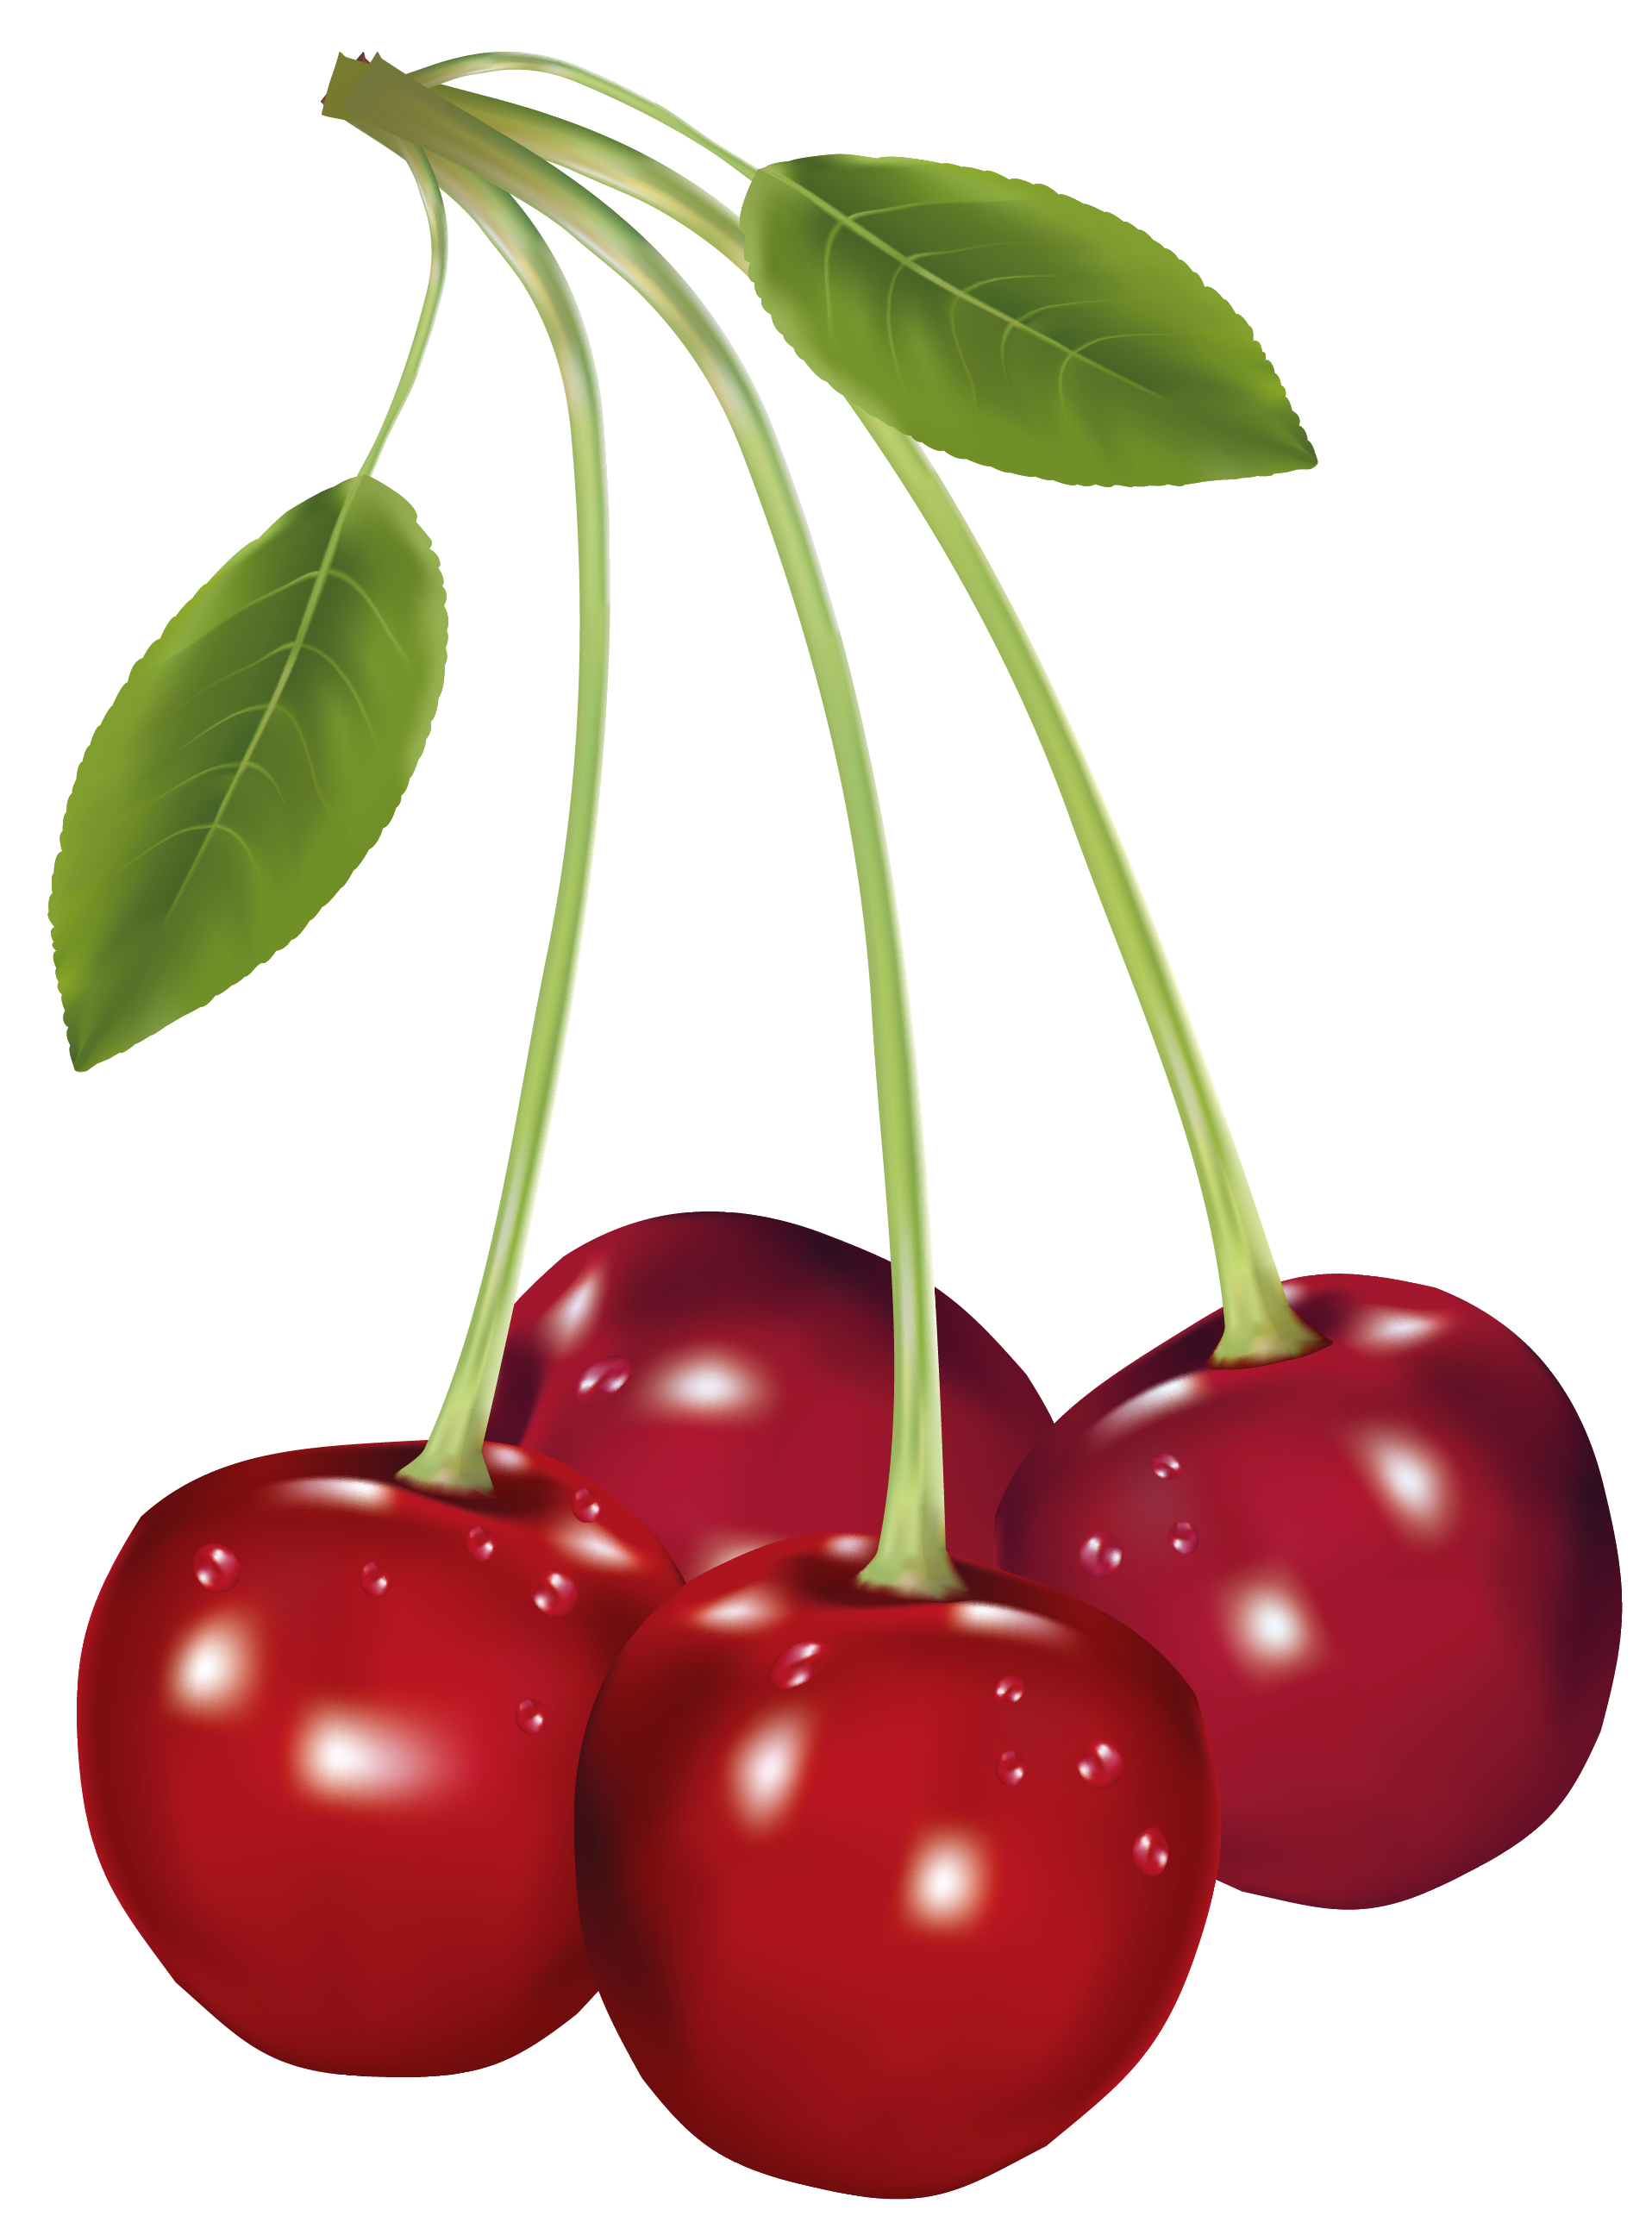 Cherries clipart cherrie. Png picture gallery yopriceville